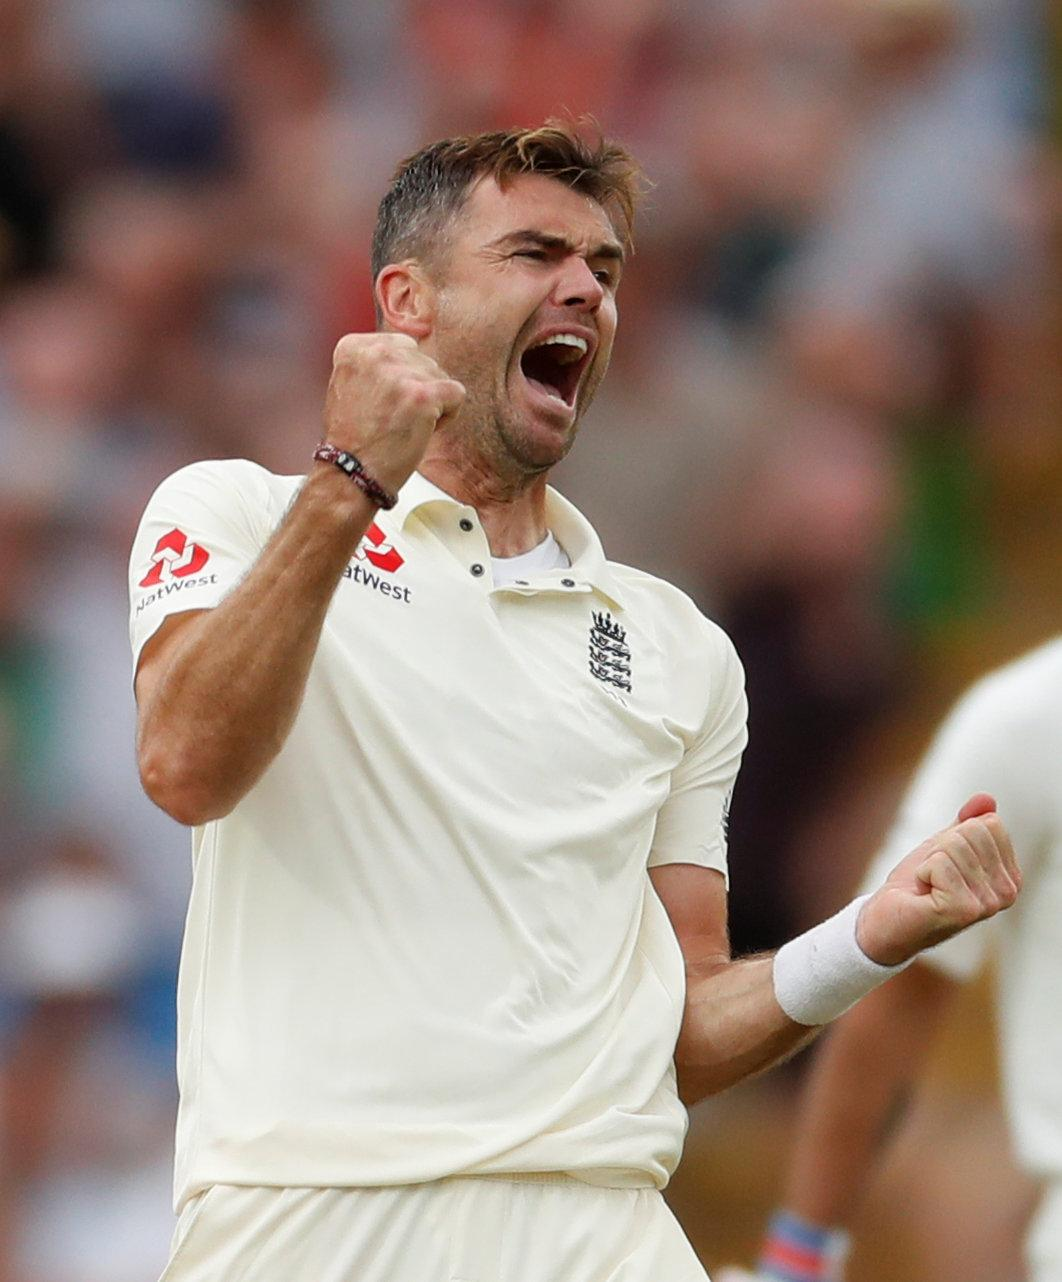 James Anderson is dreaming big about bowling England to First Test victory over India